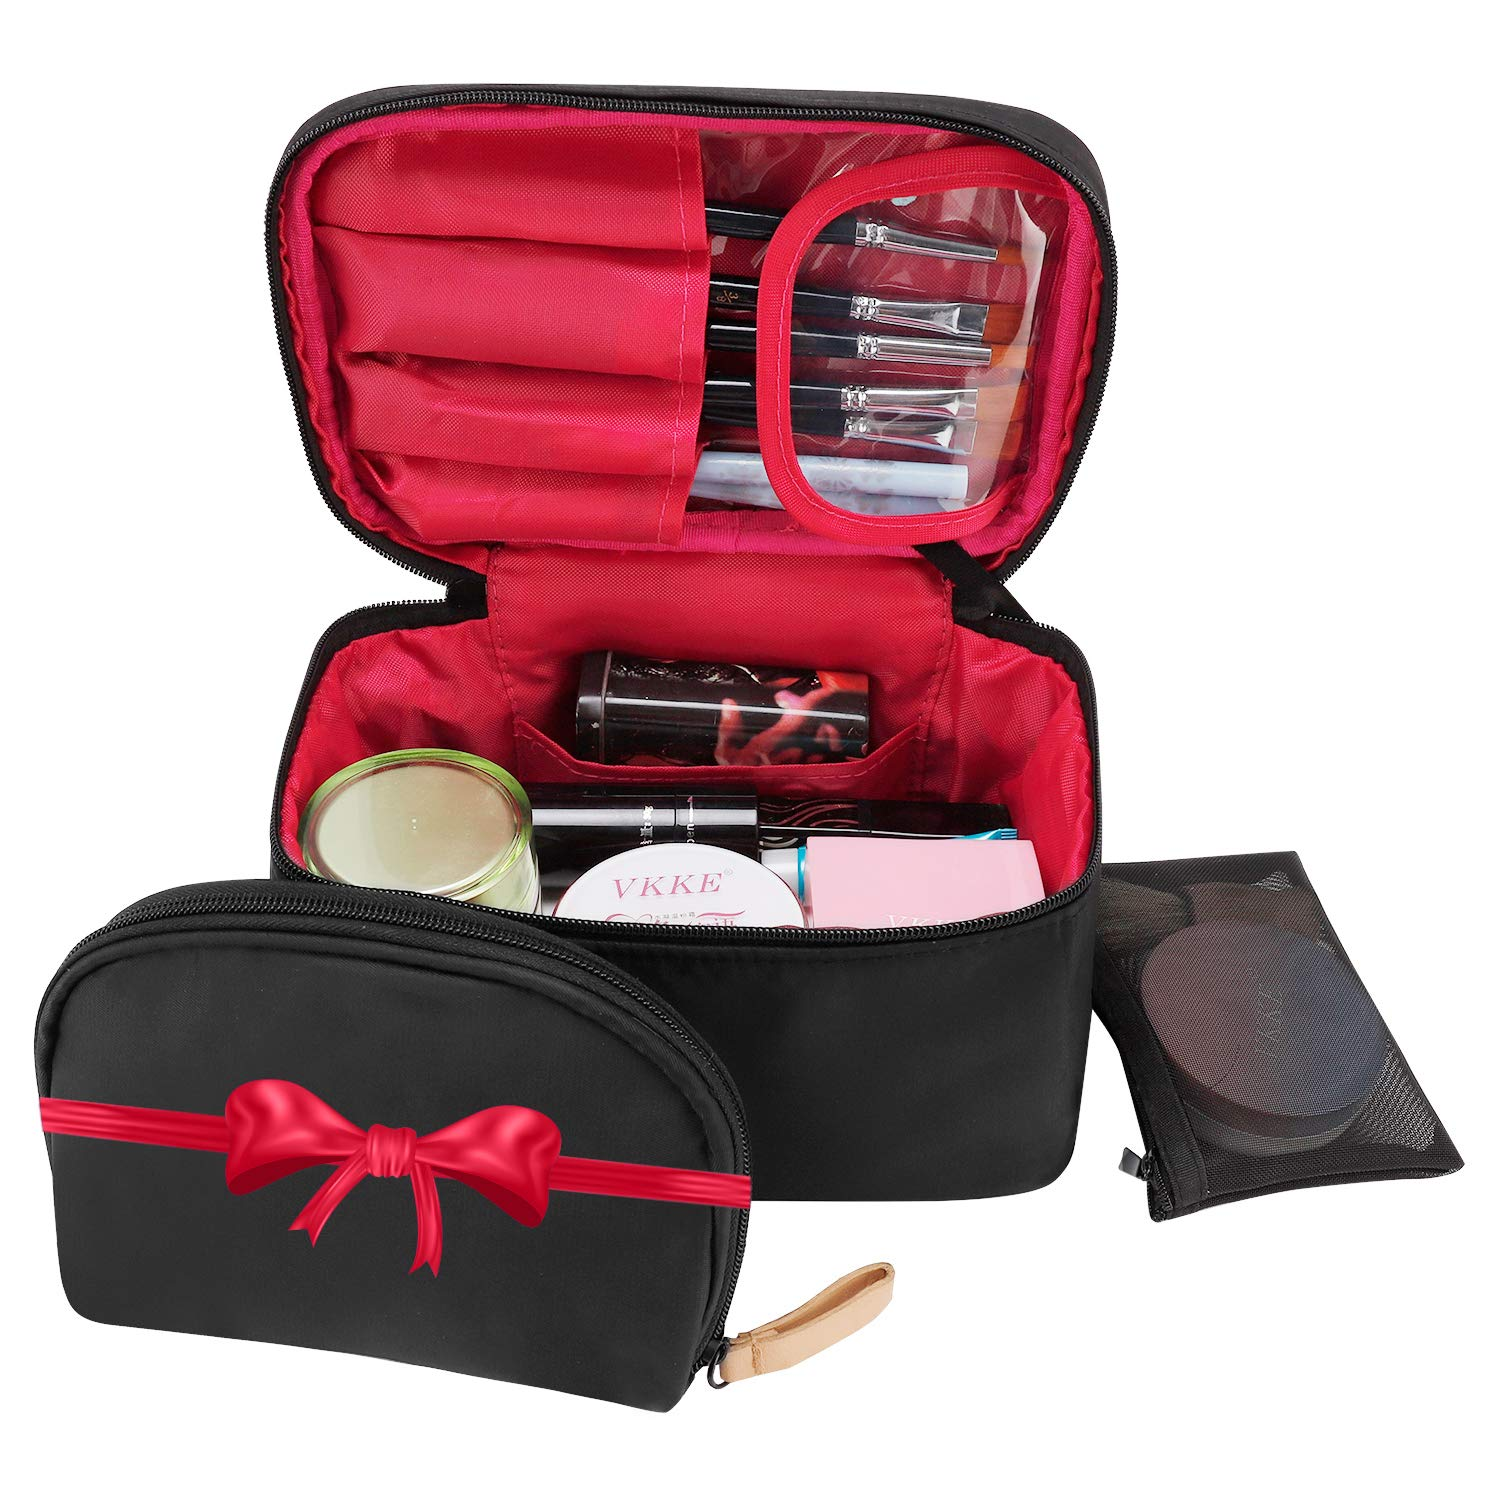 Travel Makeup Bag,wllife Makeup Bag Organizer Cosmetic Makeup Bags for Women Make Up Cosmetic Bag Case with Brush Holder-Bonus Cosmetic Pouch